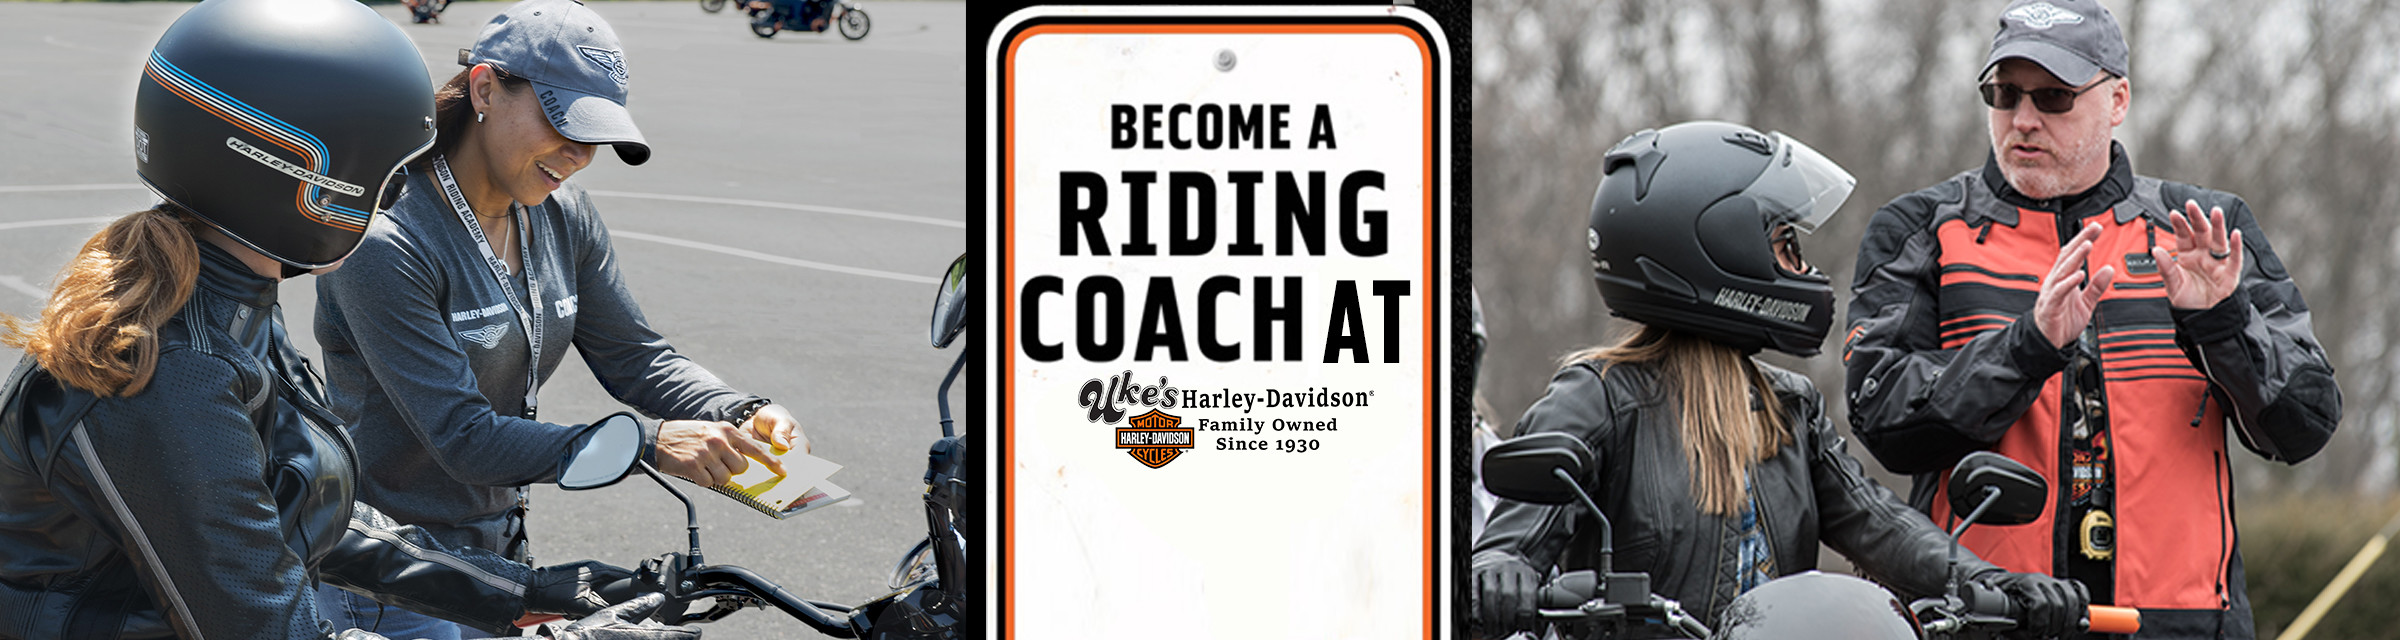 Become a Riding Coach